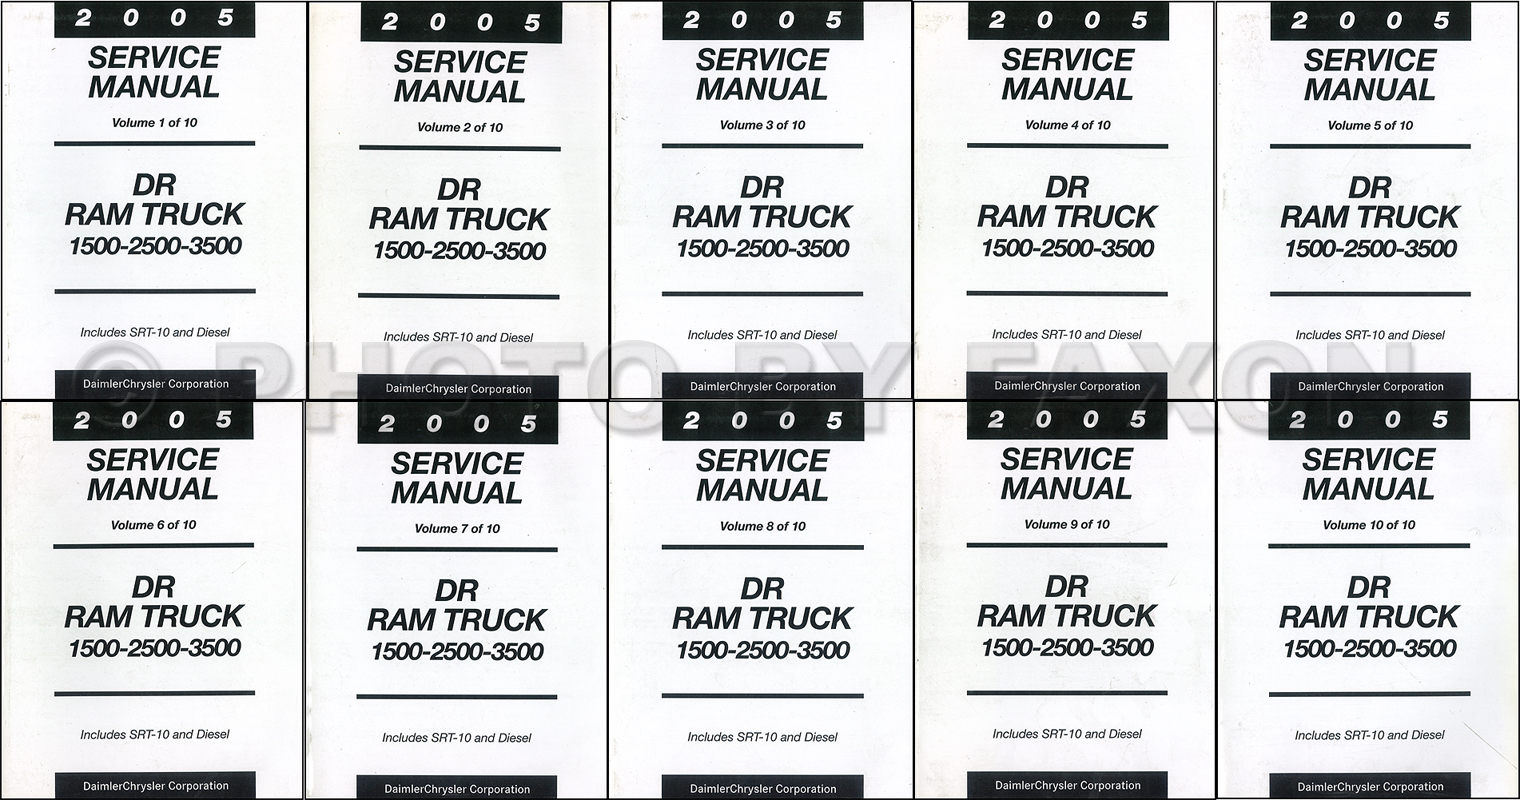 2005DodgeRamTruck1500 3500FRRMSet 2005 dodge ram truck repair shop manual 10 vol set factory wiring diagram 2005 dodge ram 1500 at honlapkeszites.co